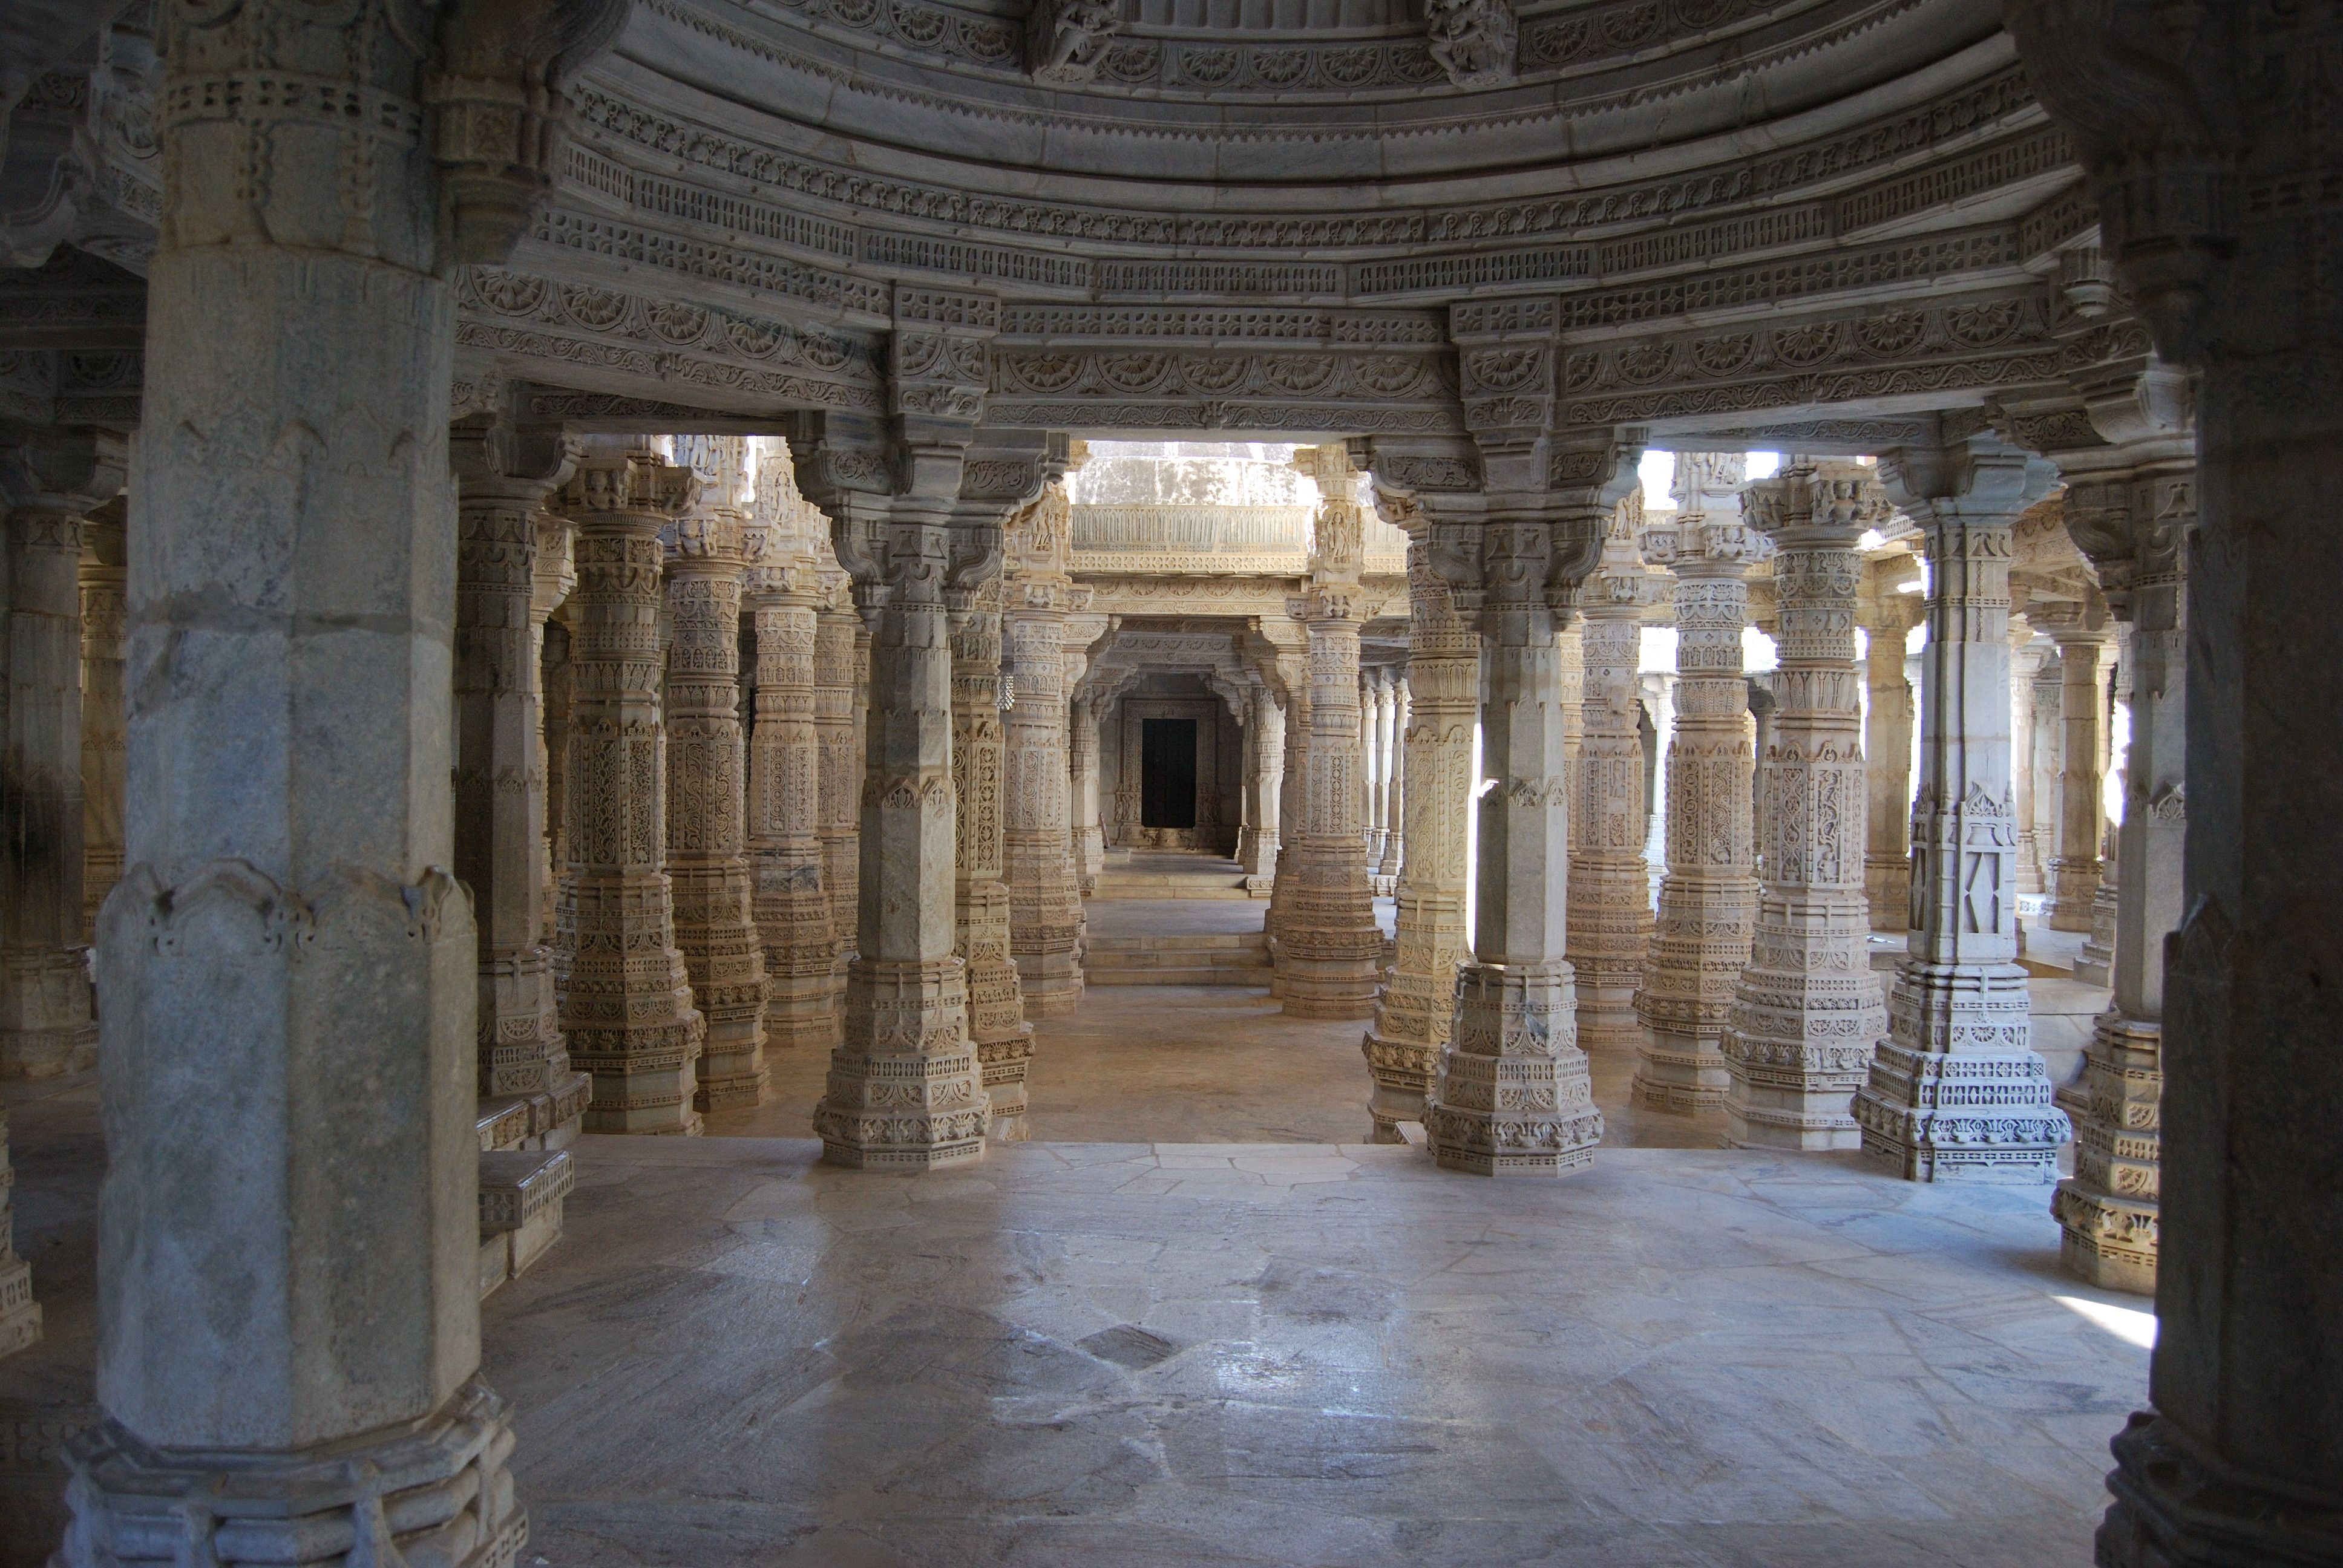 inside temples - Google Search   Places I want to visit or move to ...